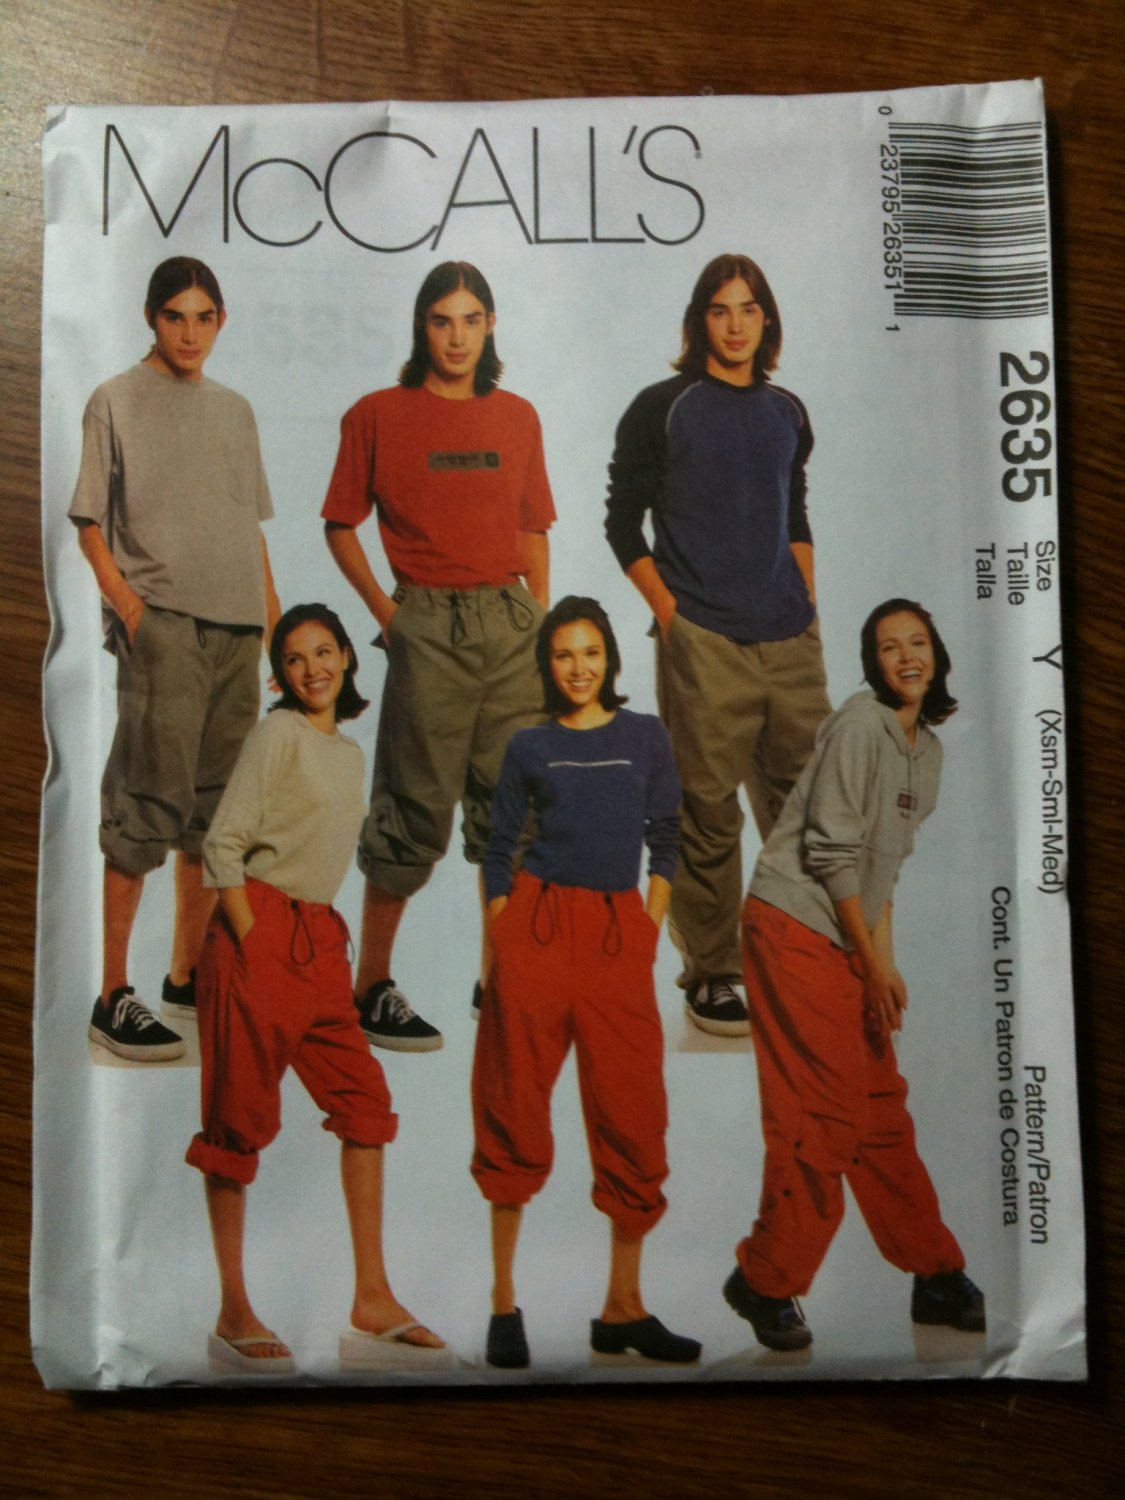 McCall's 2635 Misses', Men's and Teen Boy's Roll-up Pants Size Z LG-XLG